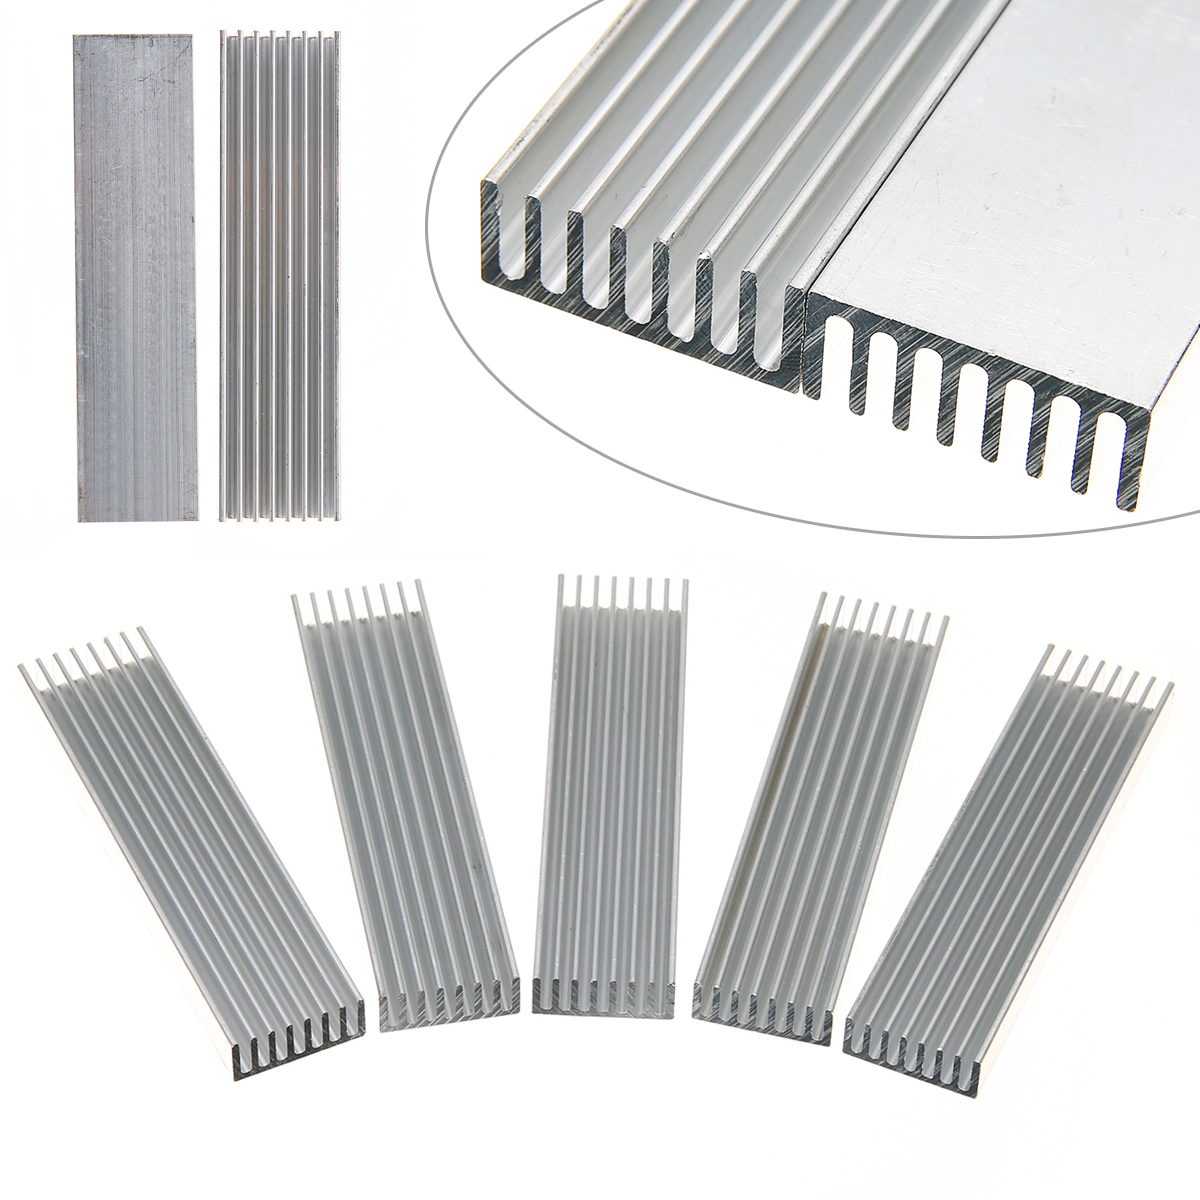 5pcs Silver Heatsink Cooler Mayitr Aluminum Heat Sink Chip 100*25*10mm for IC LED Power Transistor Heat Dissipation hot 5pcs 19 19 5mm high quality aluminum heat sink for led power memory chip ic diy